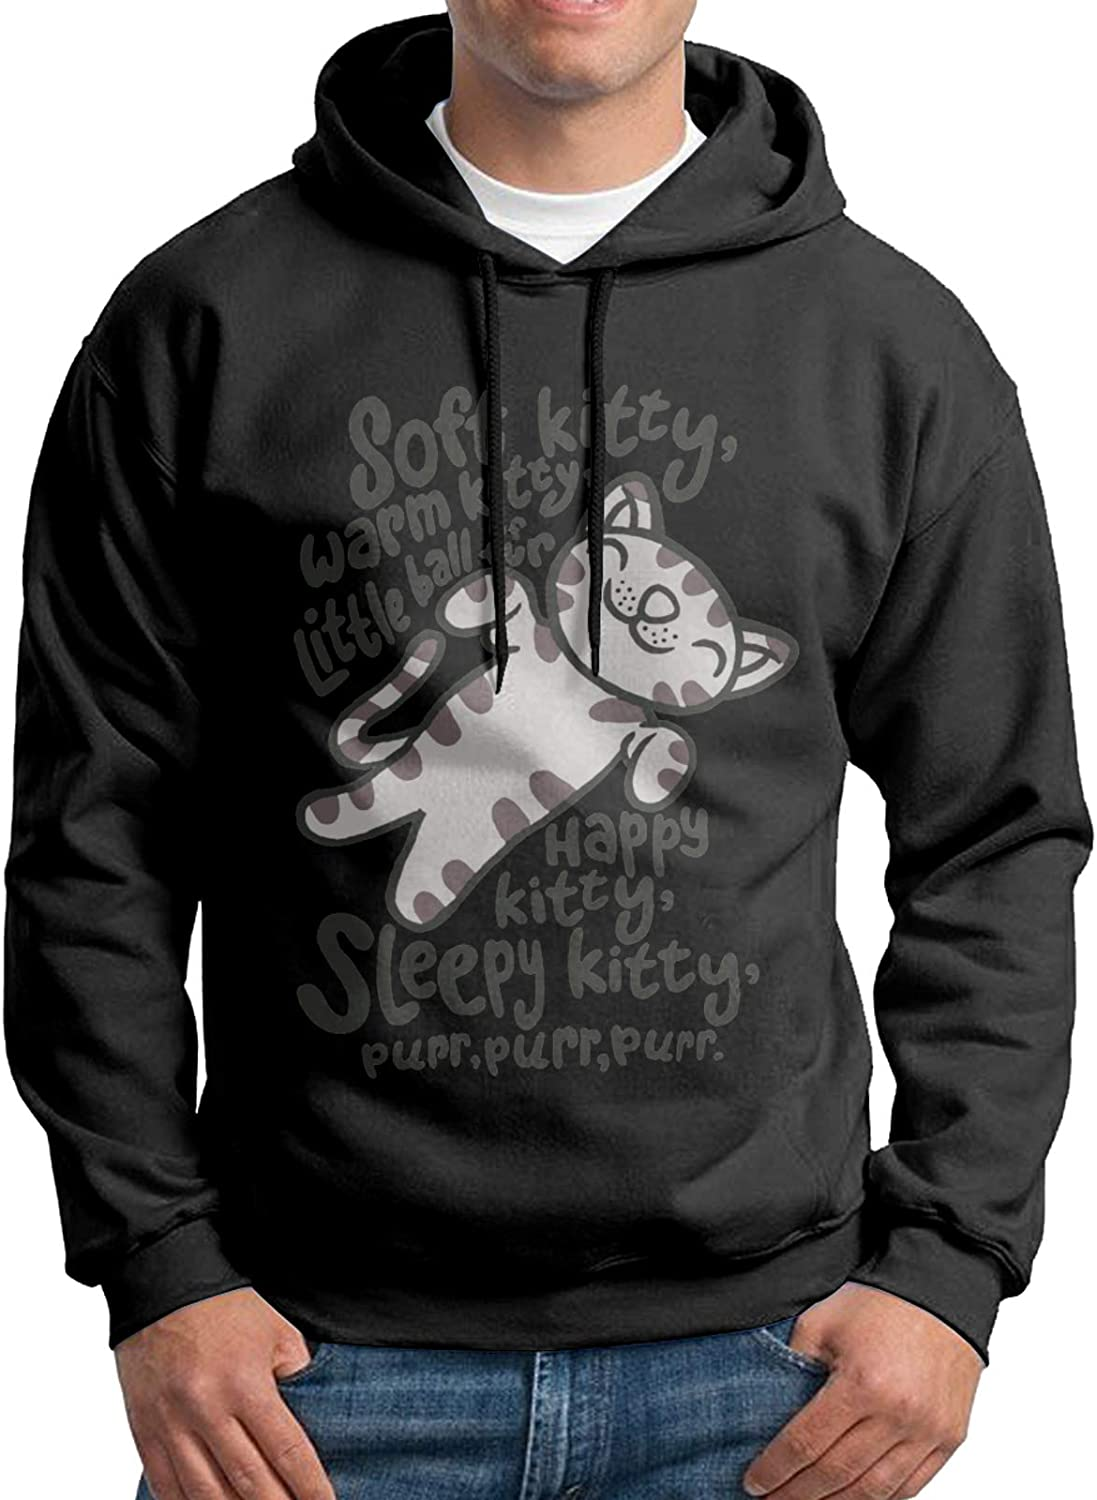 Fashion The Big Bang Theory Soft Kitty Men's Autumn and Winter Warm Hoodies Casual Long-Sleeved Sweaters Running Sweatshirts